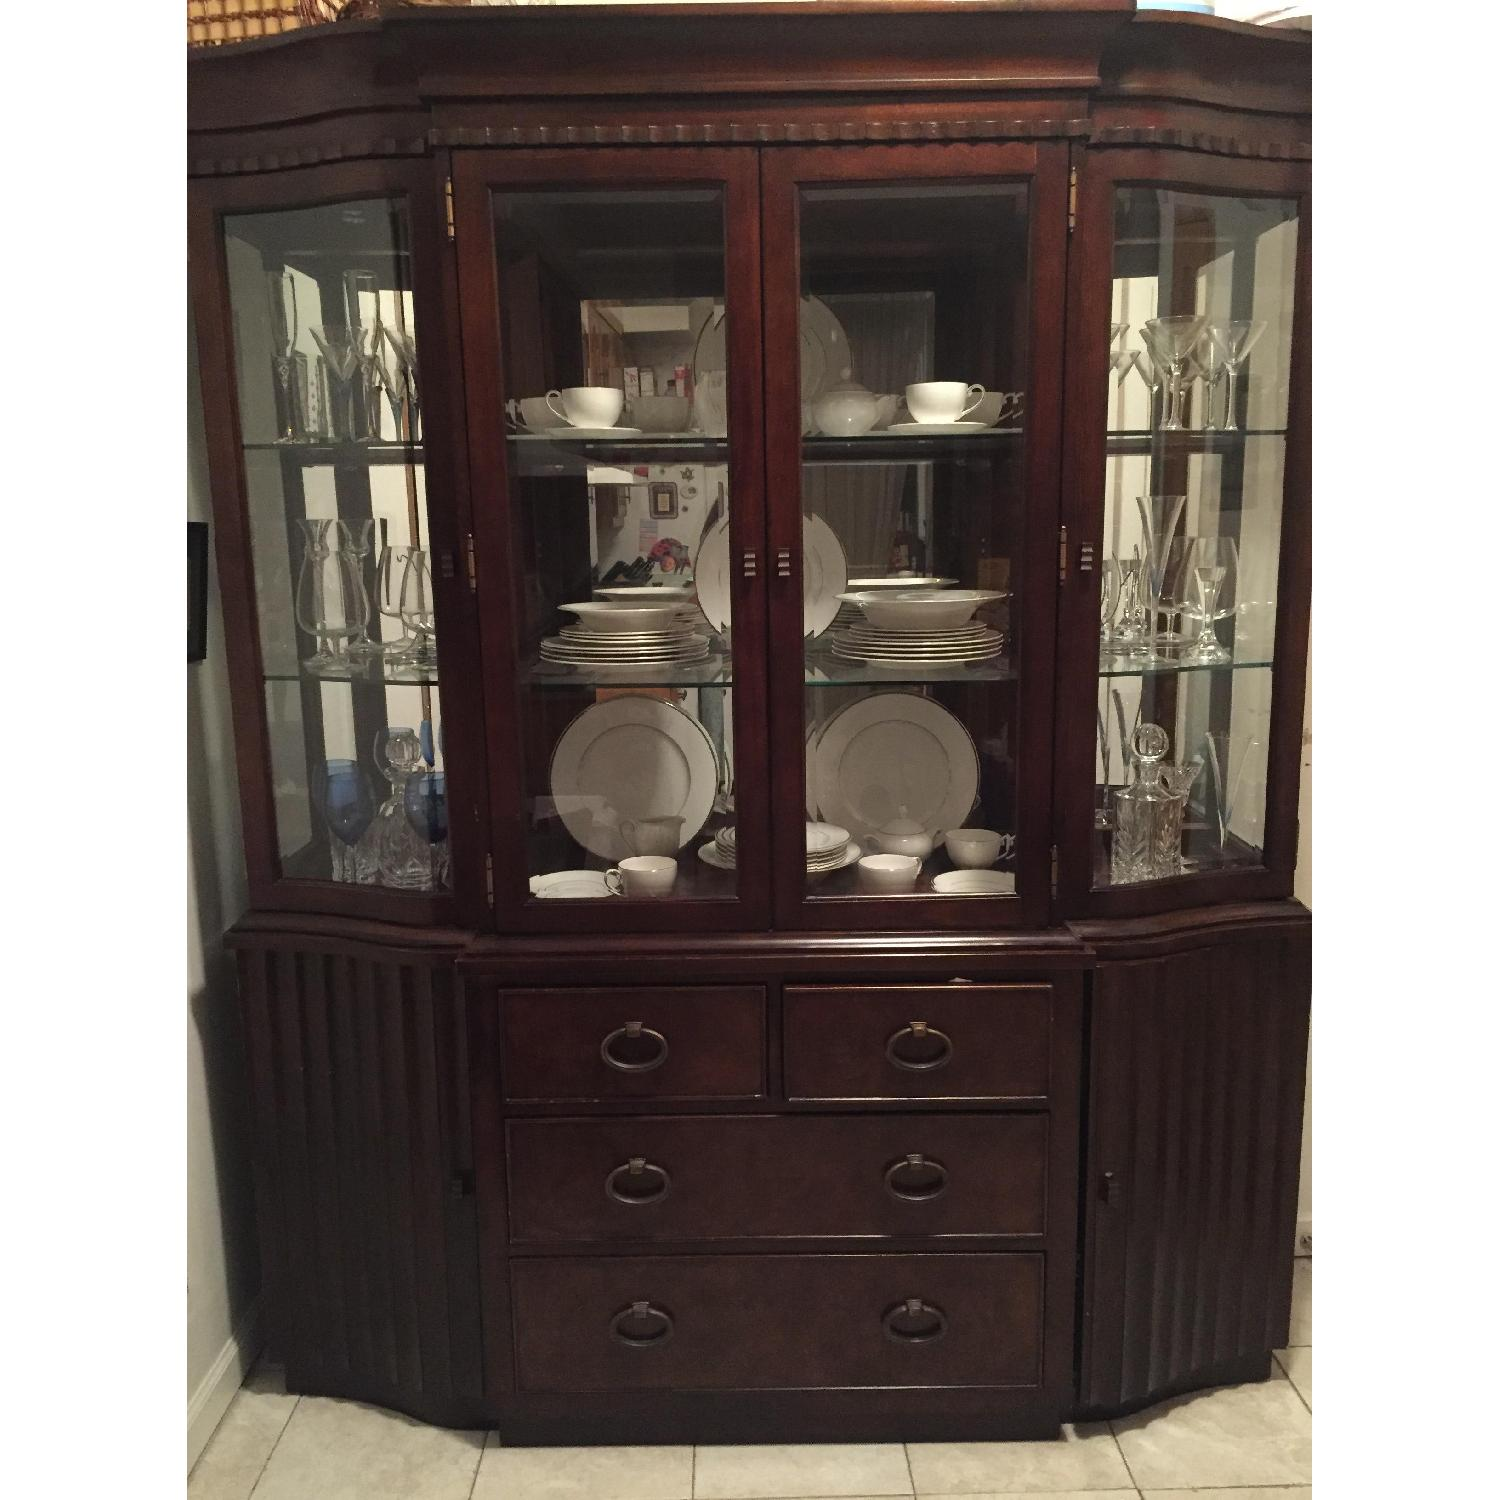 Expandable Dining Table w/ 6 Chairs + China Closet - image-2